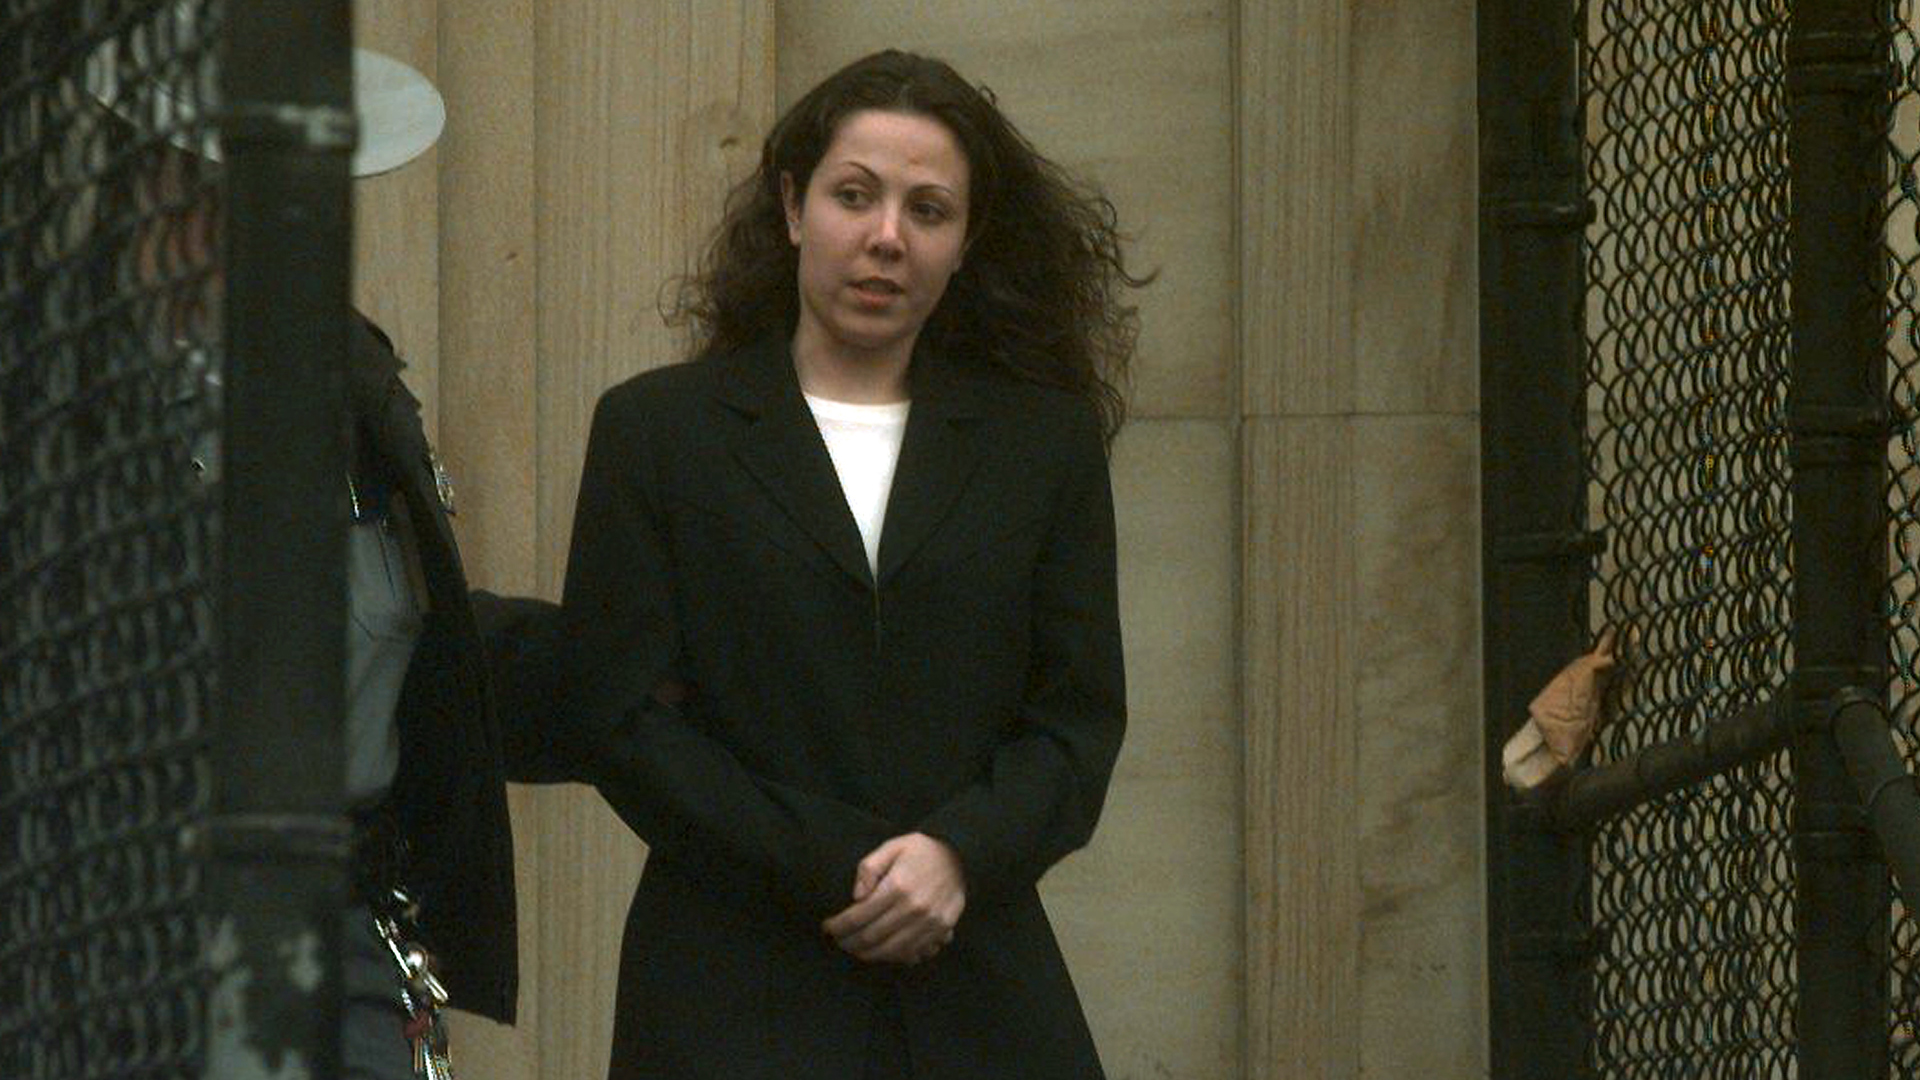 Amy Fisher Caught On Tape amy fisher's life now, 20 years after being released from